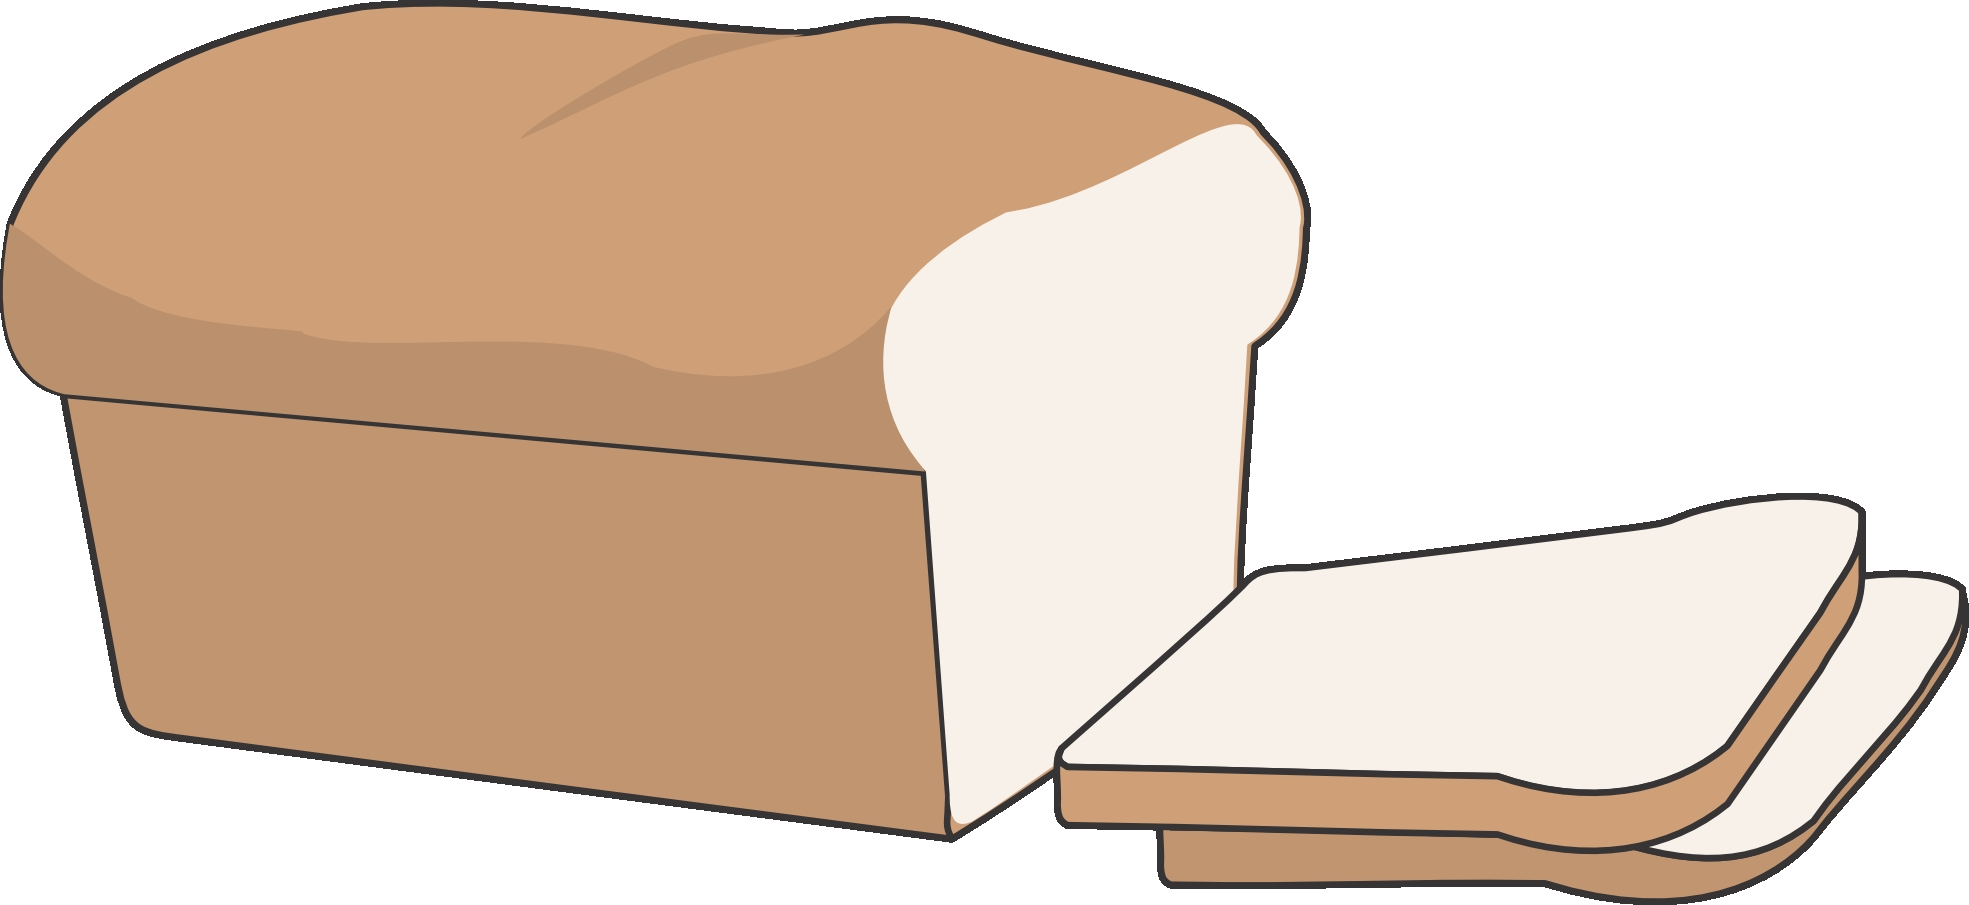 Loaf of bread clipart Inspirational Bread clipart free clip art on.